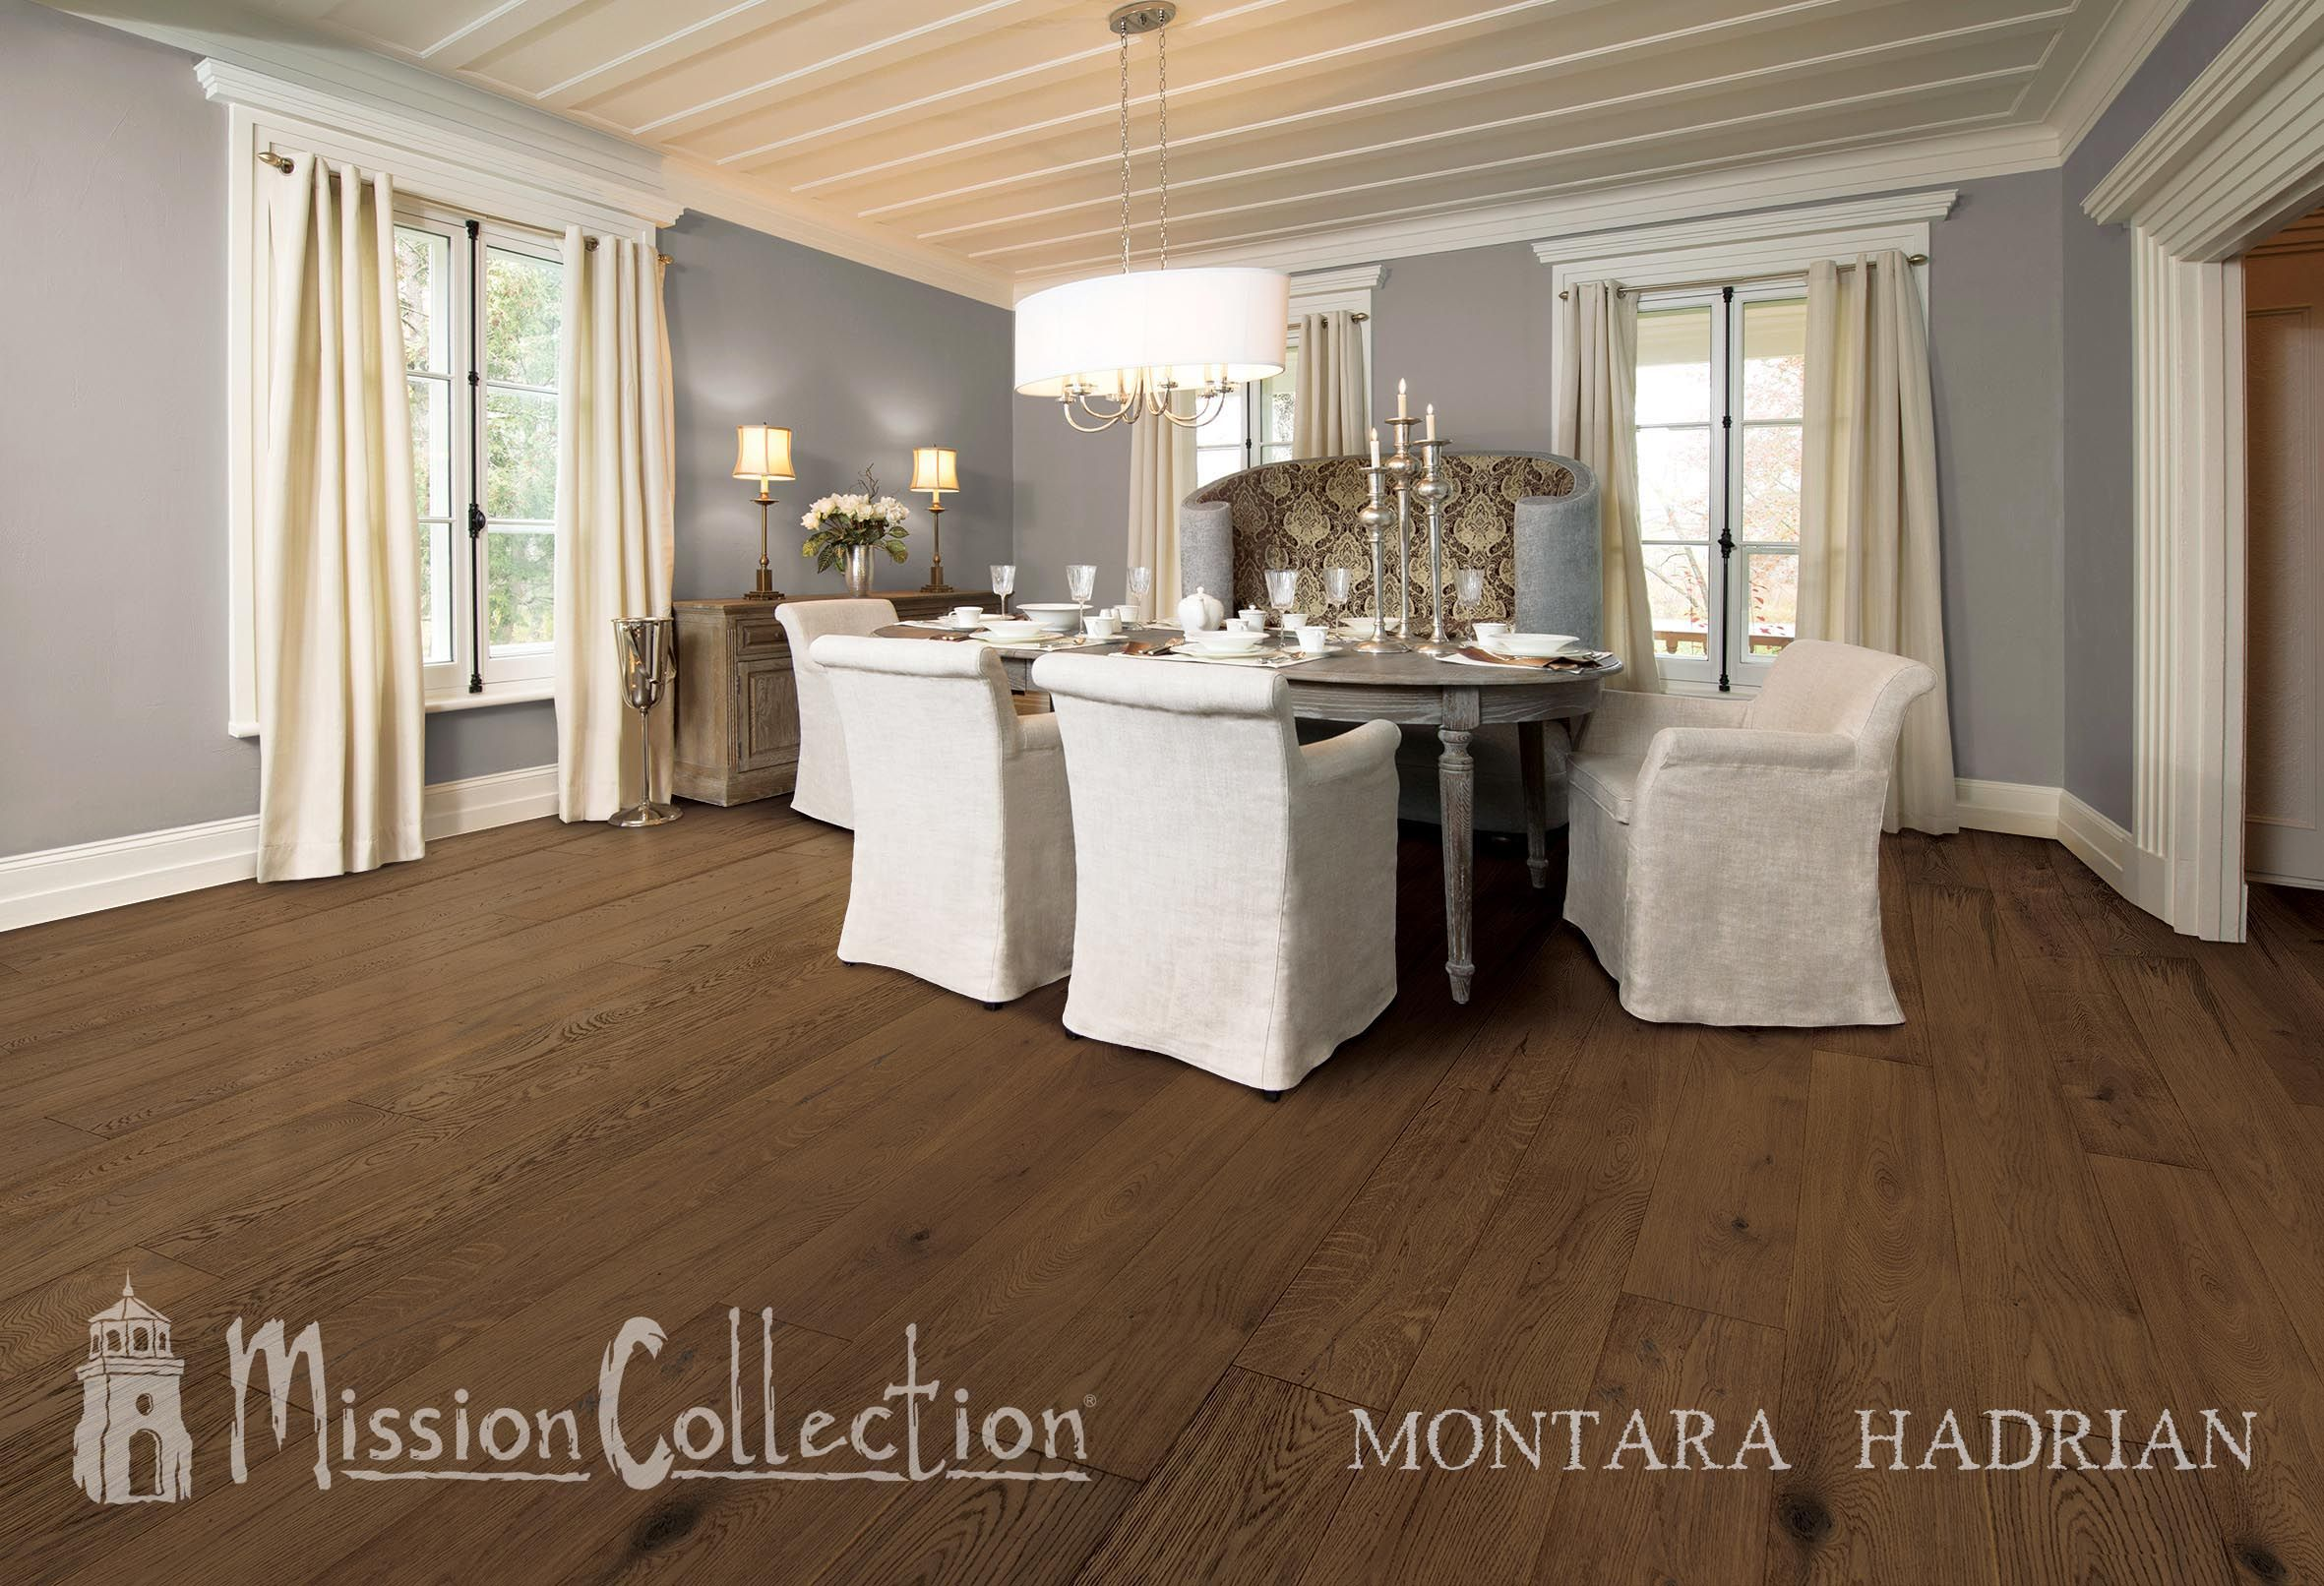 Montara's hand selected French Oak planks create a country chic and modern décor for your home.